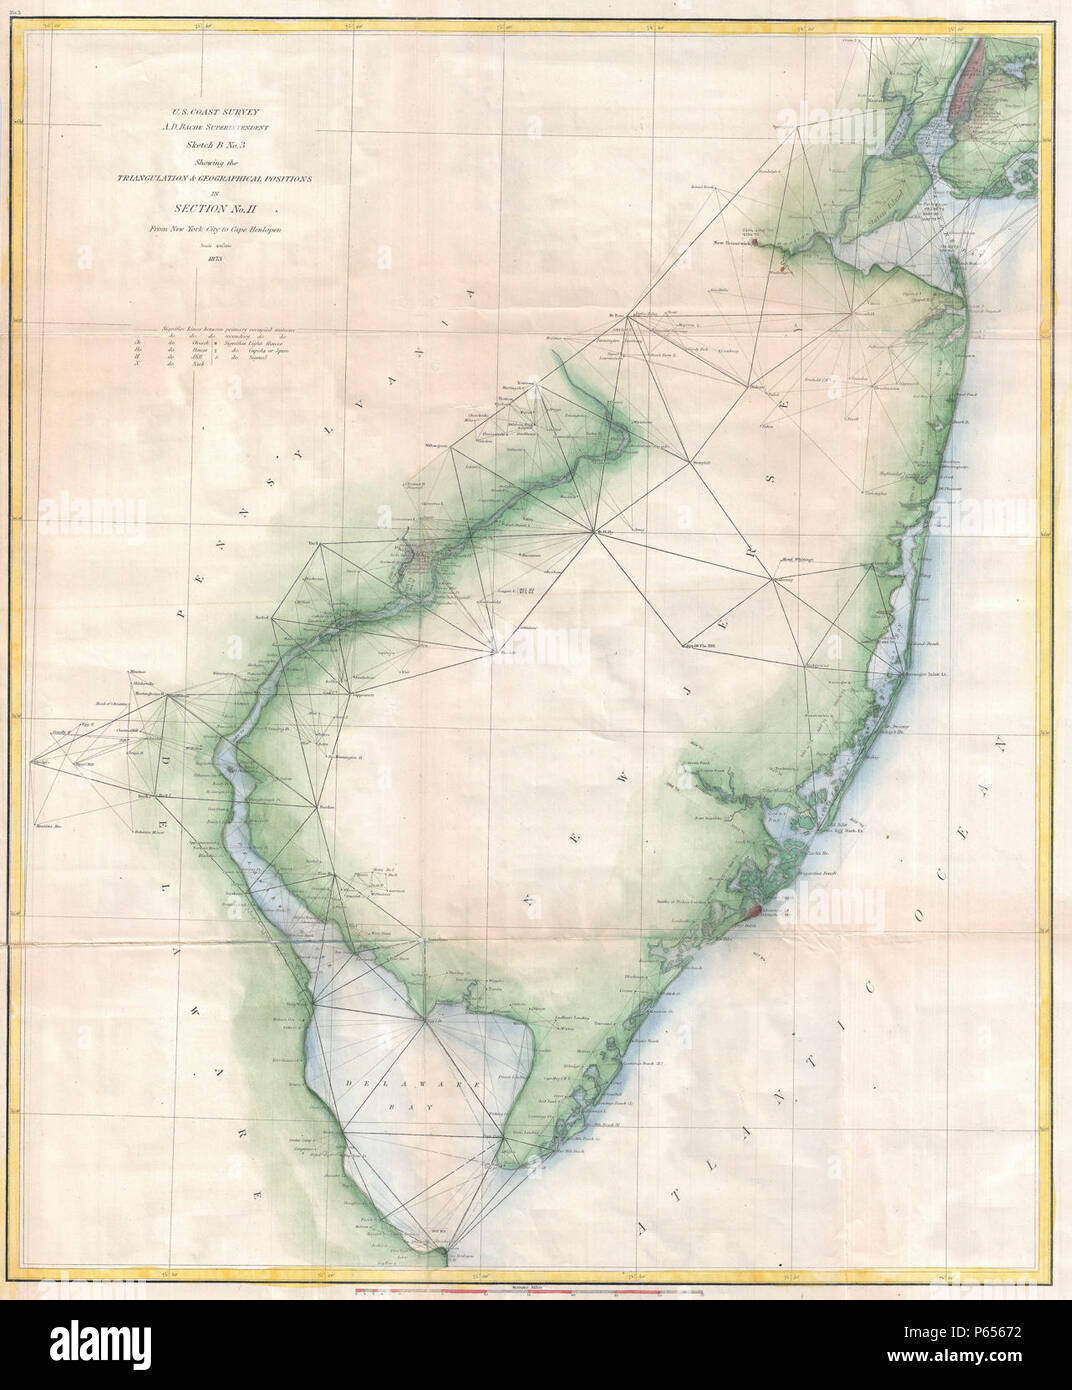 1873 U.S. Coast Survey Chart or Map of New Jersey and the Delaware Bay - Geographicus - NewJersey-uscs-1873. - Stock Image